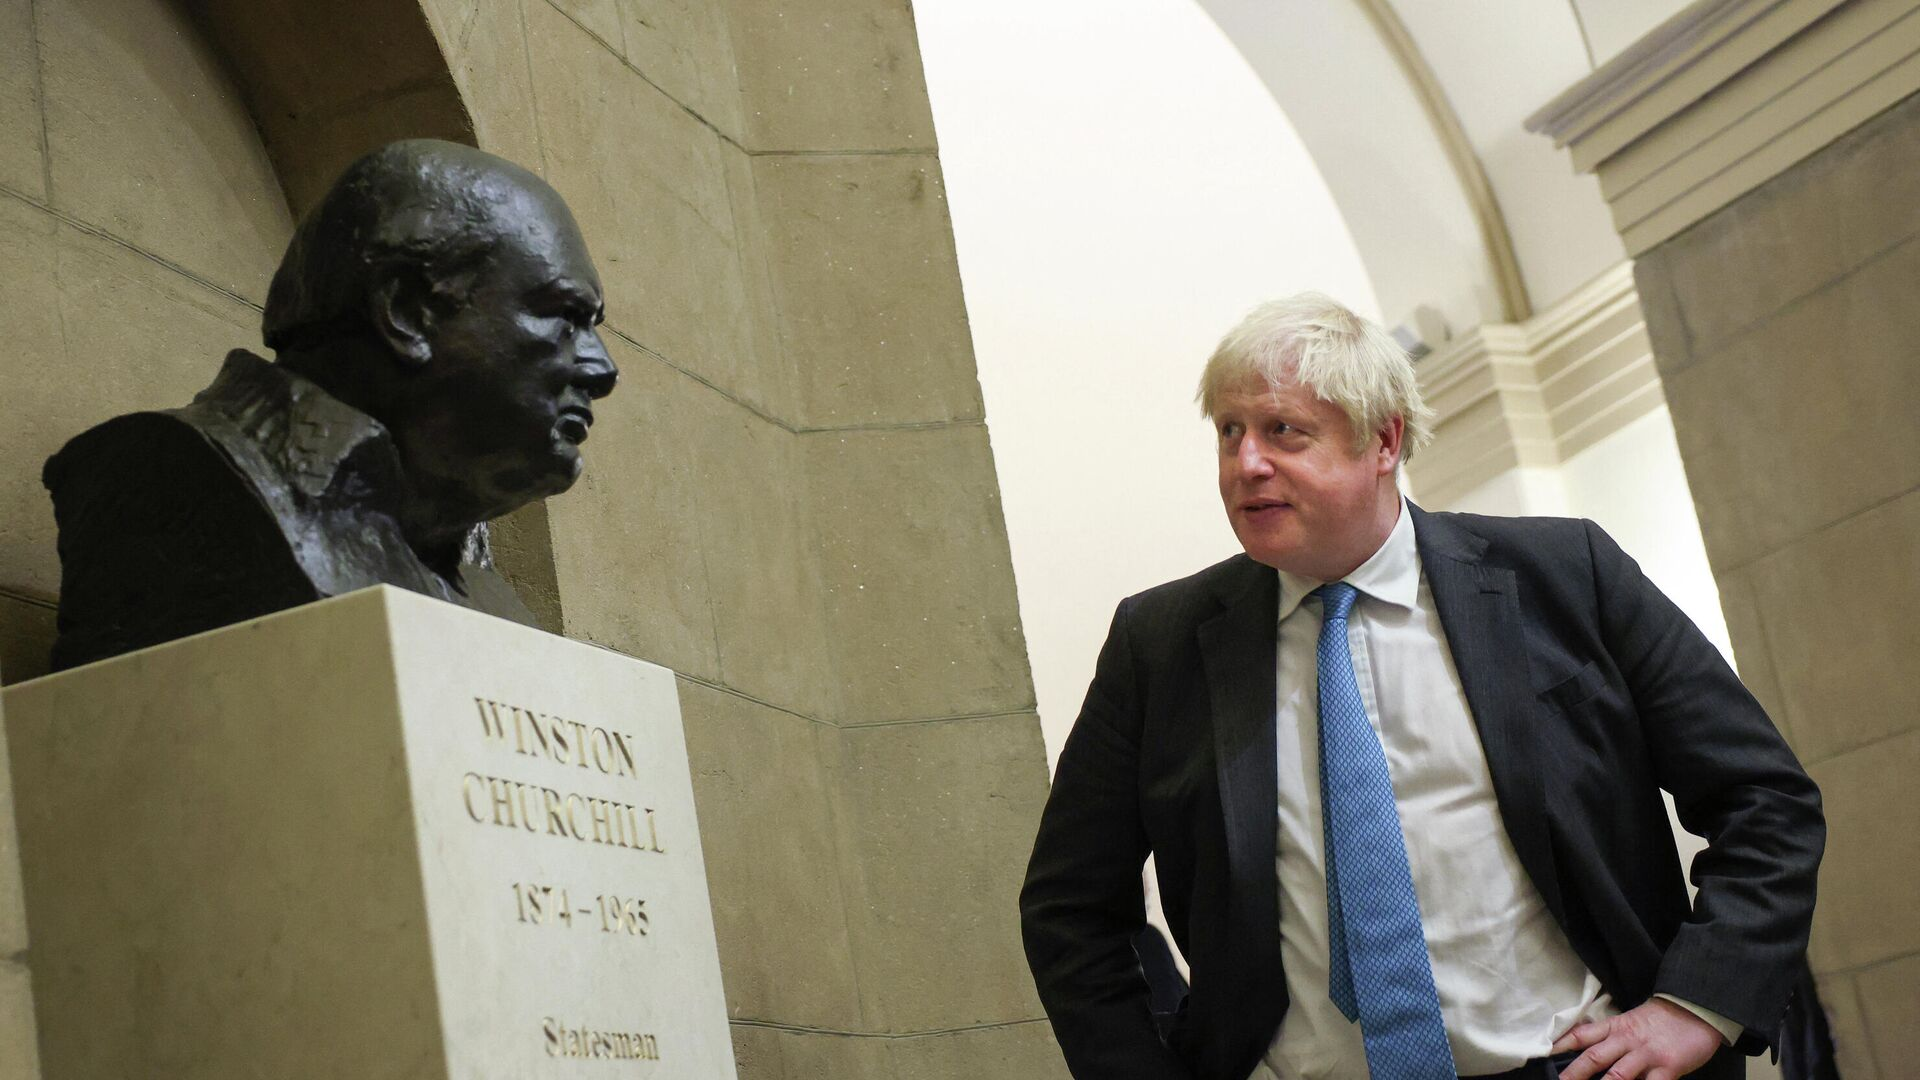 British Prime Minister Boris Johnson looks at a bust of Winston Churchill as he departs the U.S. Capitol following a visit with Congressional leadership on September 22, 2021 in Washington, DC. - Sputnik International, 1920, 13.10.2021